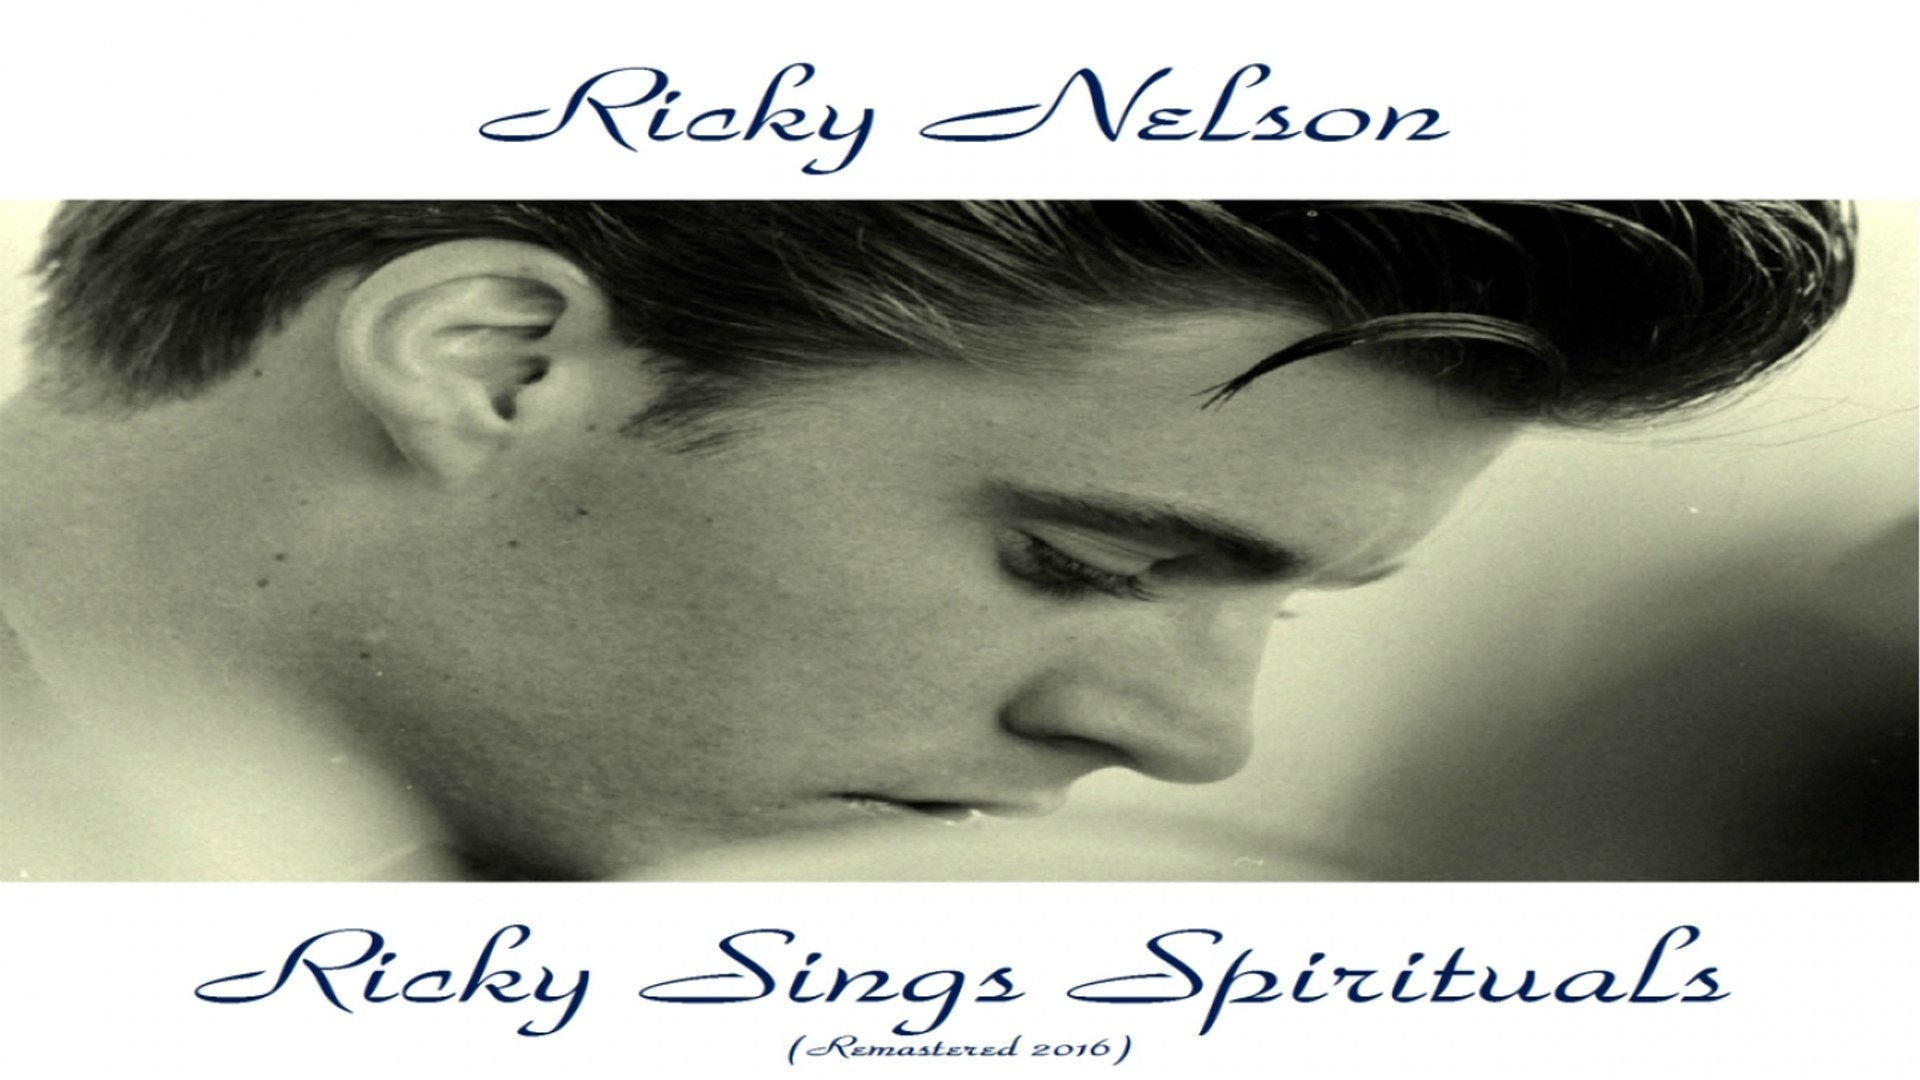 Ricky Nelson Sings Spirituals - Analog Source Remaster 2016